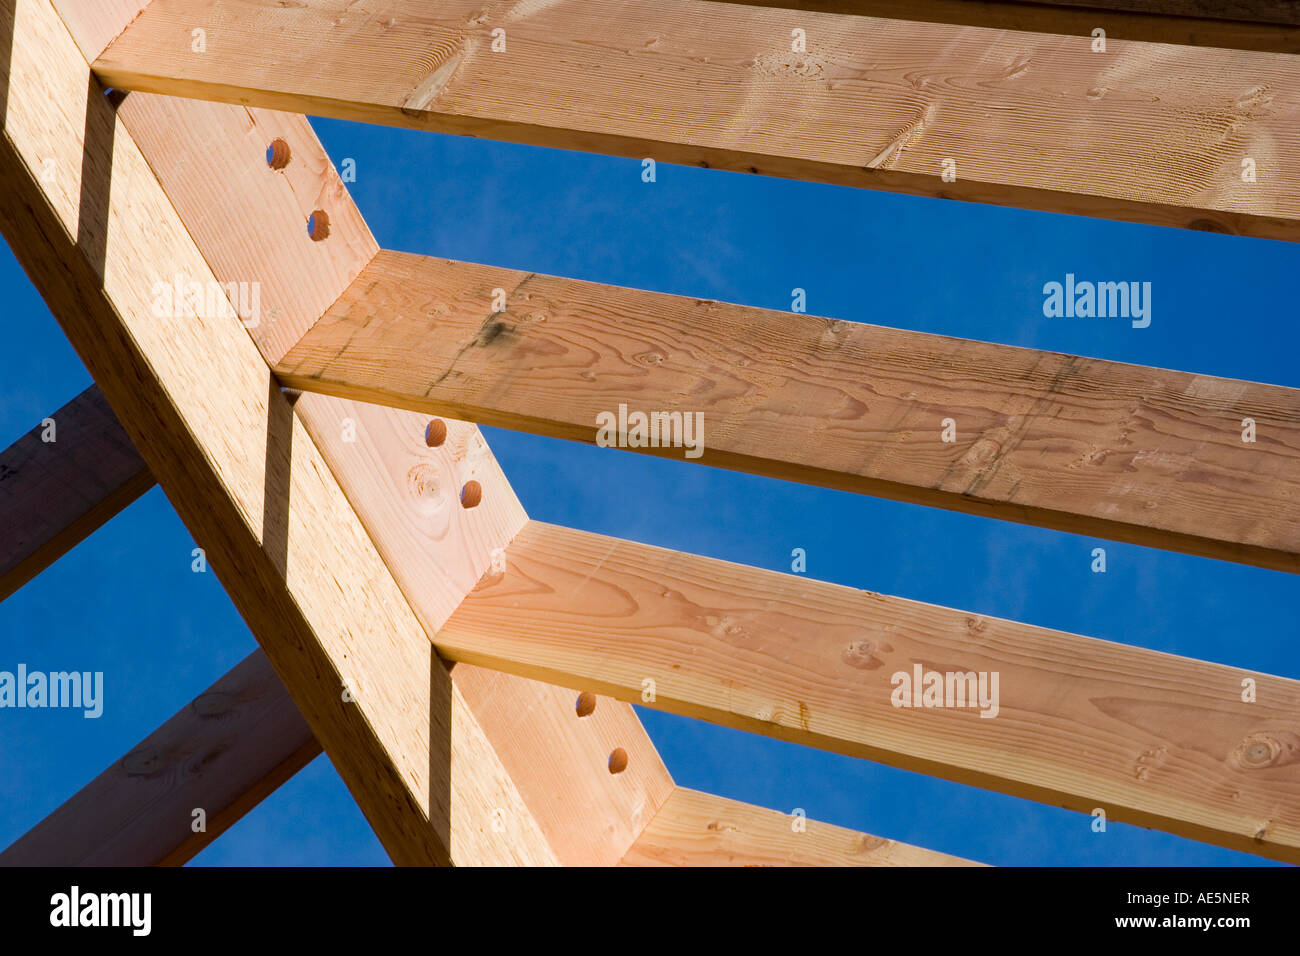 Roof rafters resting on ridge beam of room under